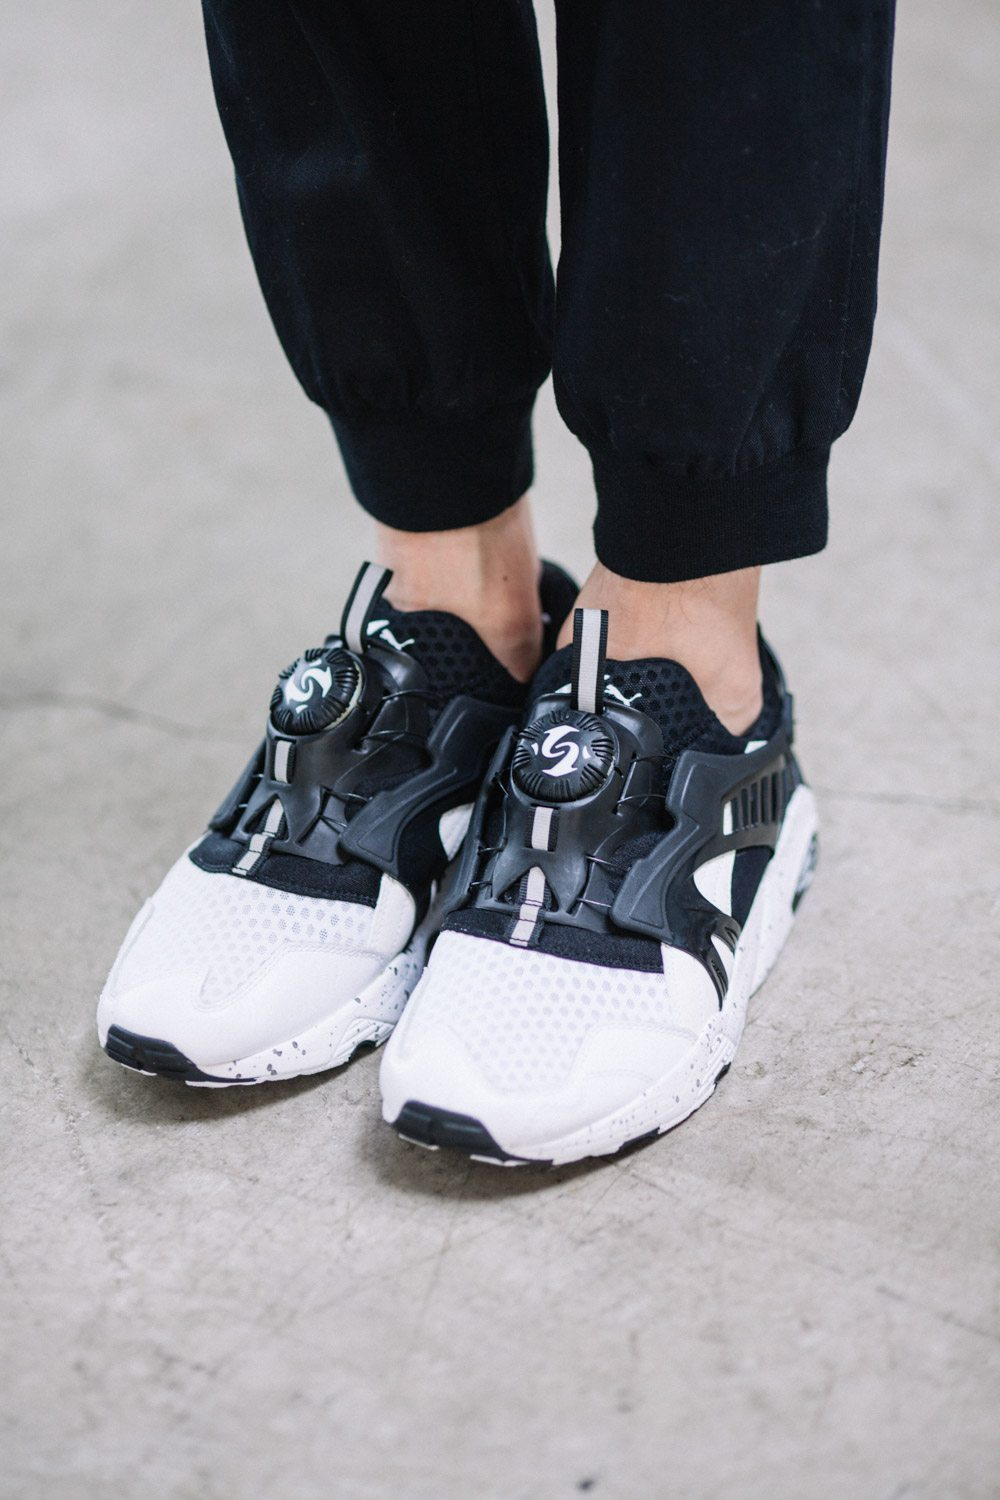 PUMA x monkey time Disc Blaze Orca 4